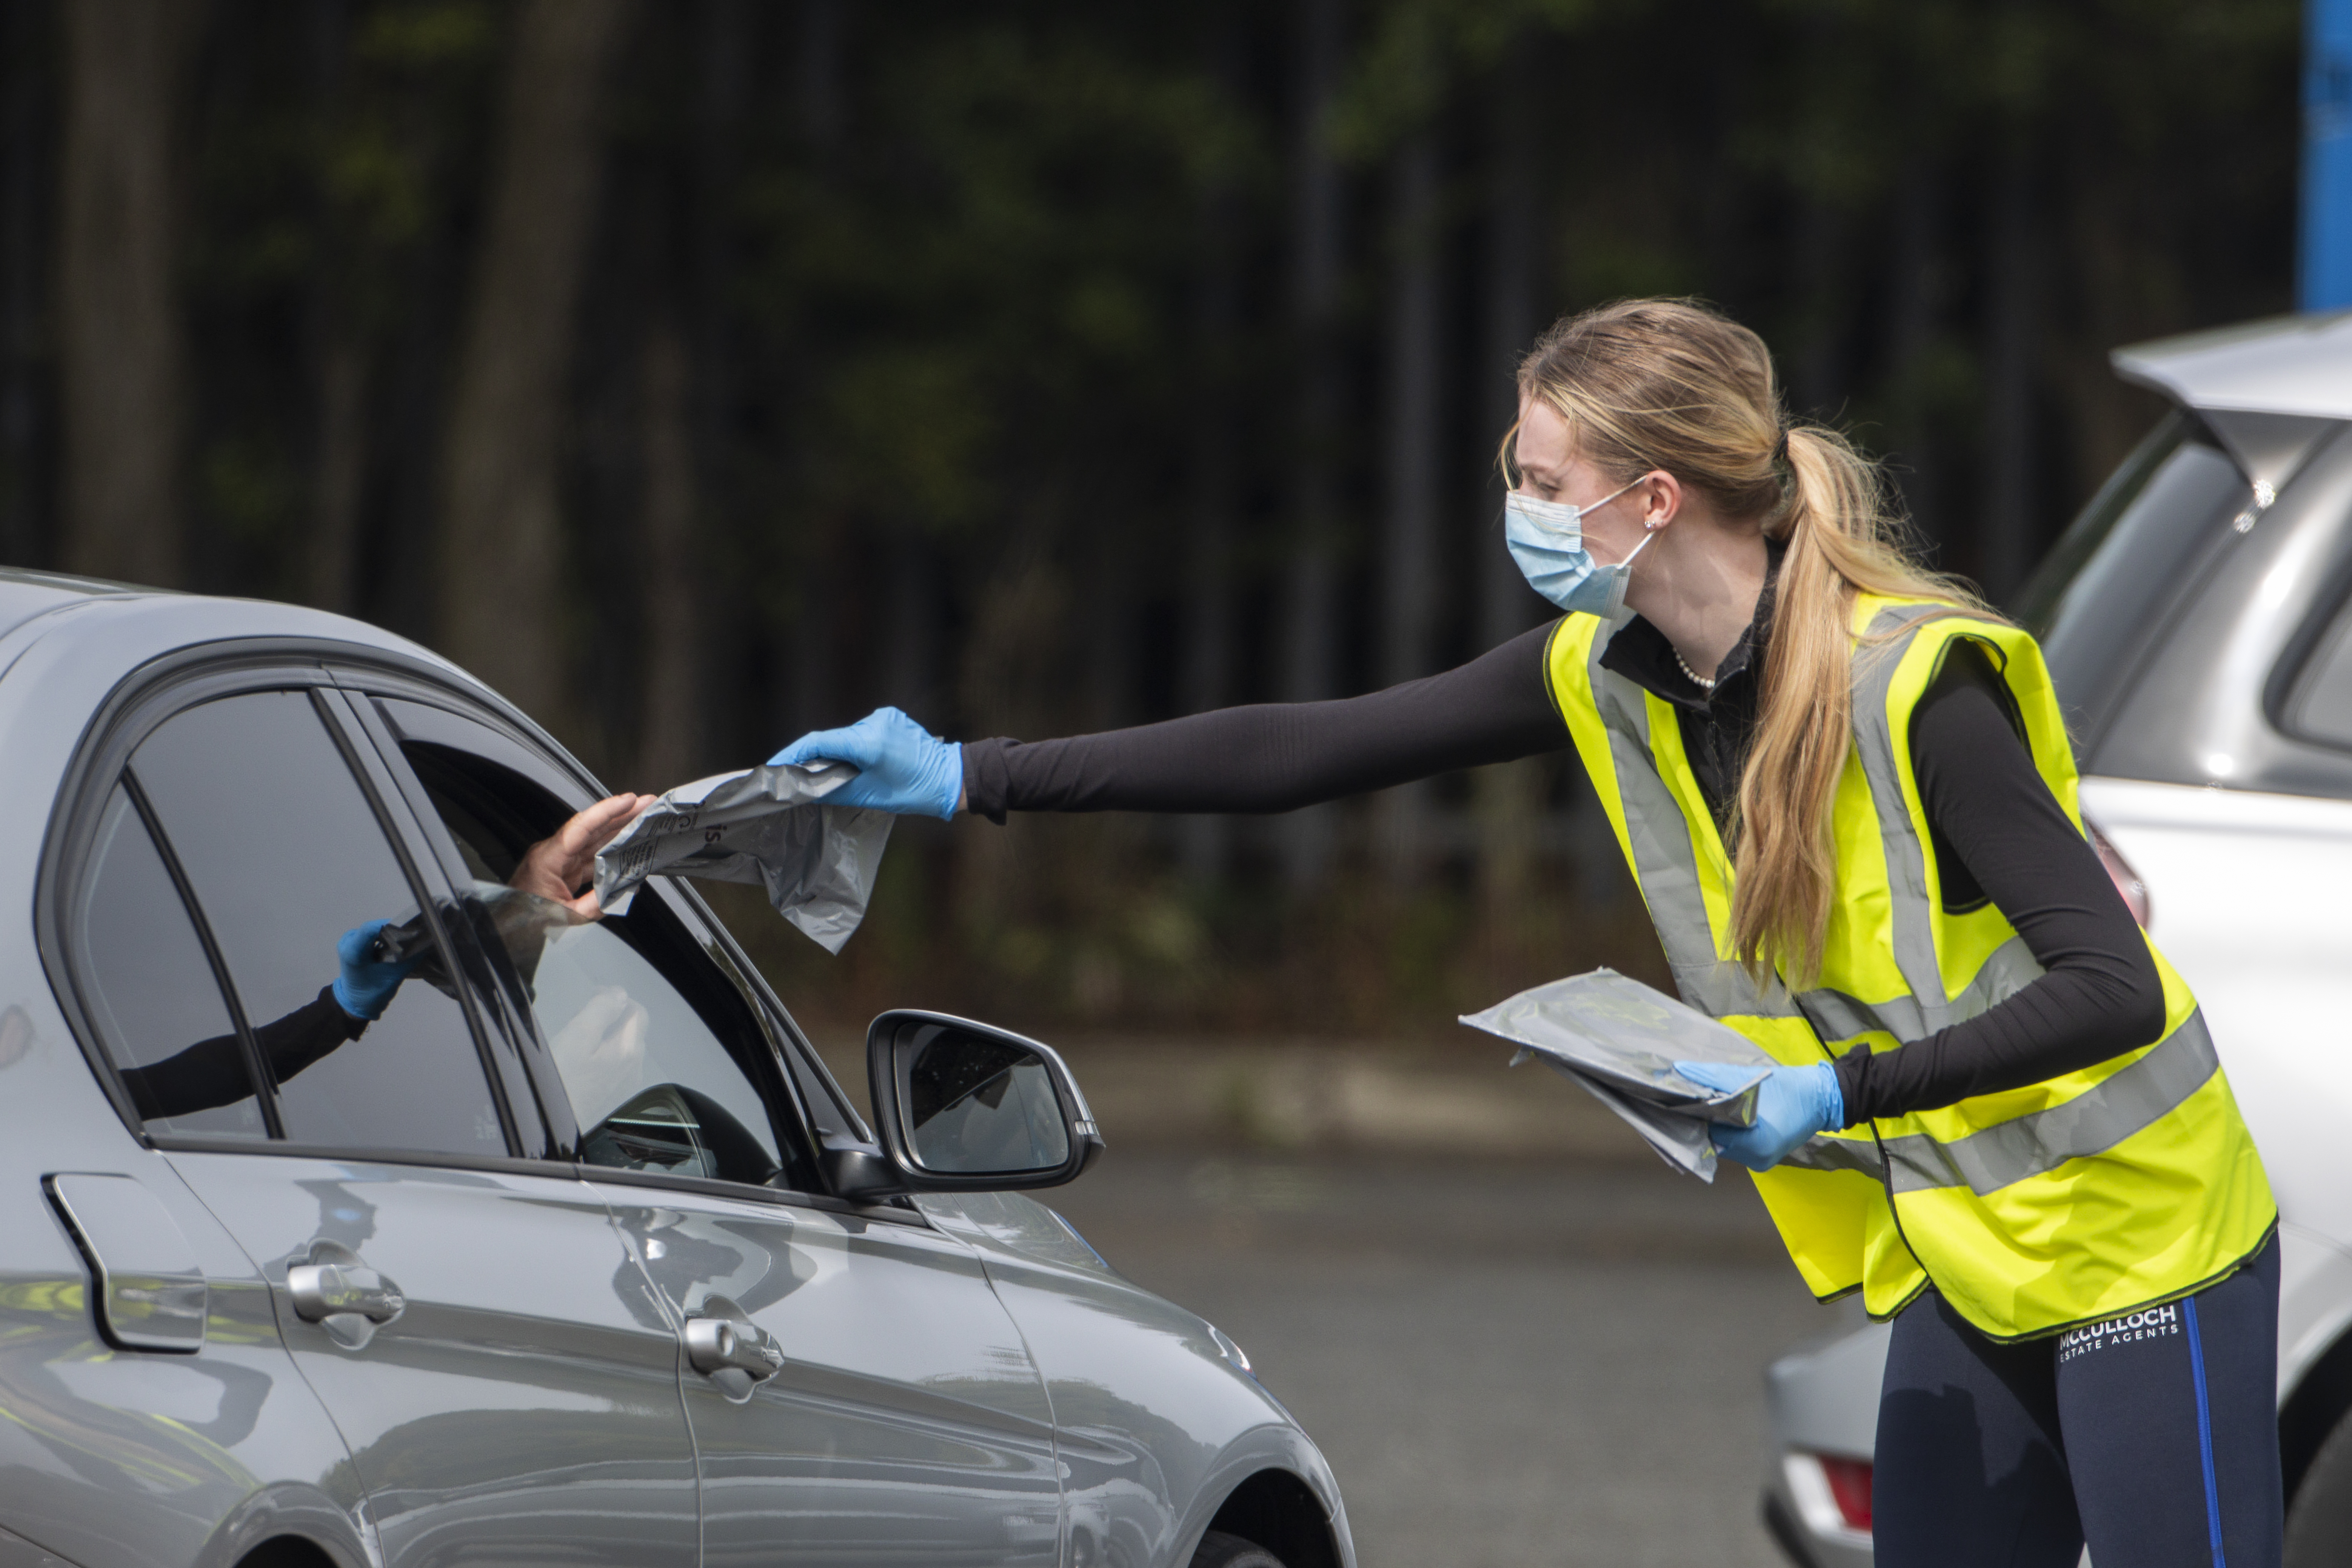 <p>A mobile testing facility at Larne Leisure centre following the news that 400 pupils at the local high school missed classes because they had come into contact with someone with Covid-19. (Photo by Liam McBurney/PA Images via Getty Images)</p>